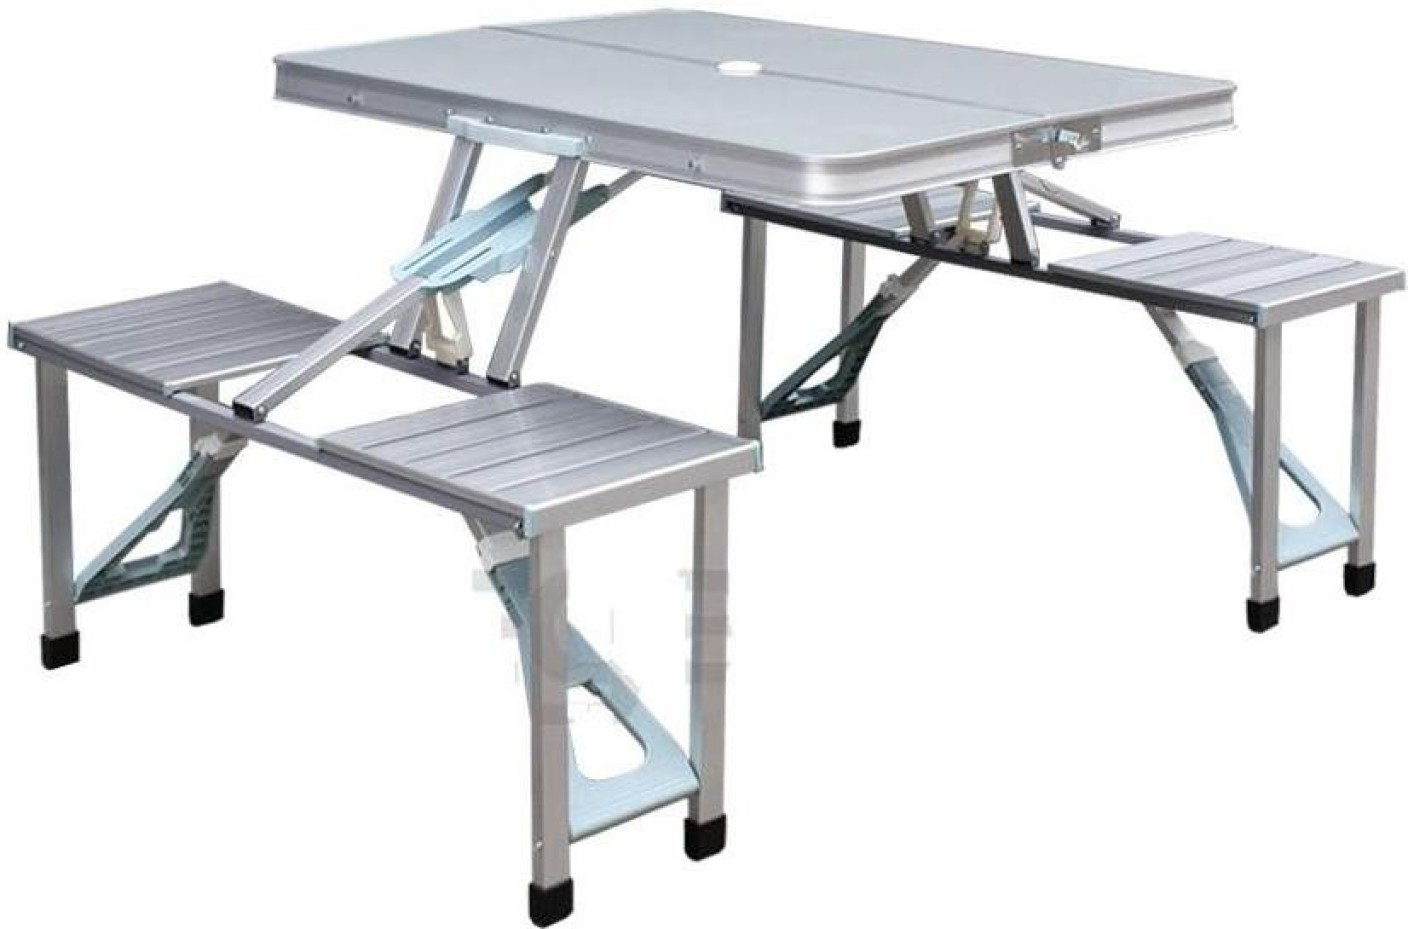 Gor aluminum fold able picnic table with umbrella metal - Aluminium picnic table with umbrella ...